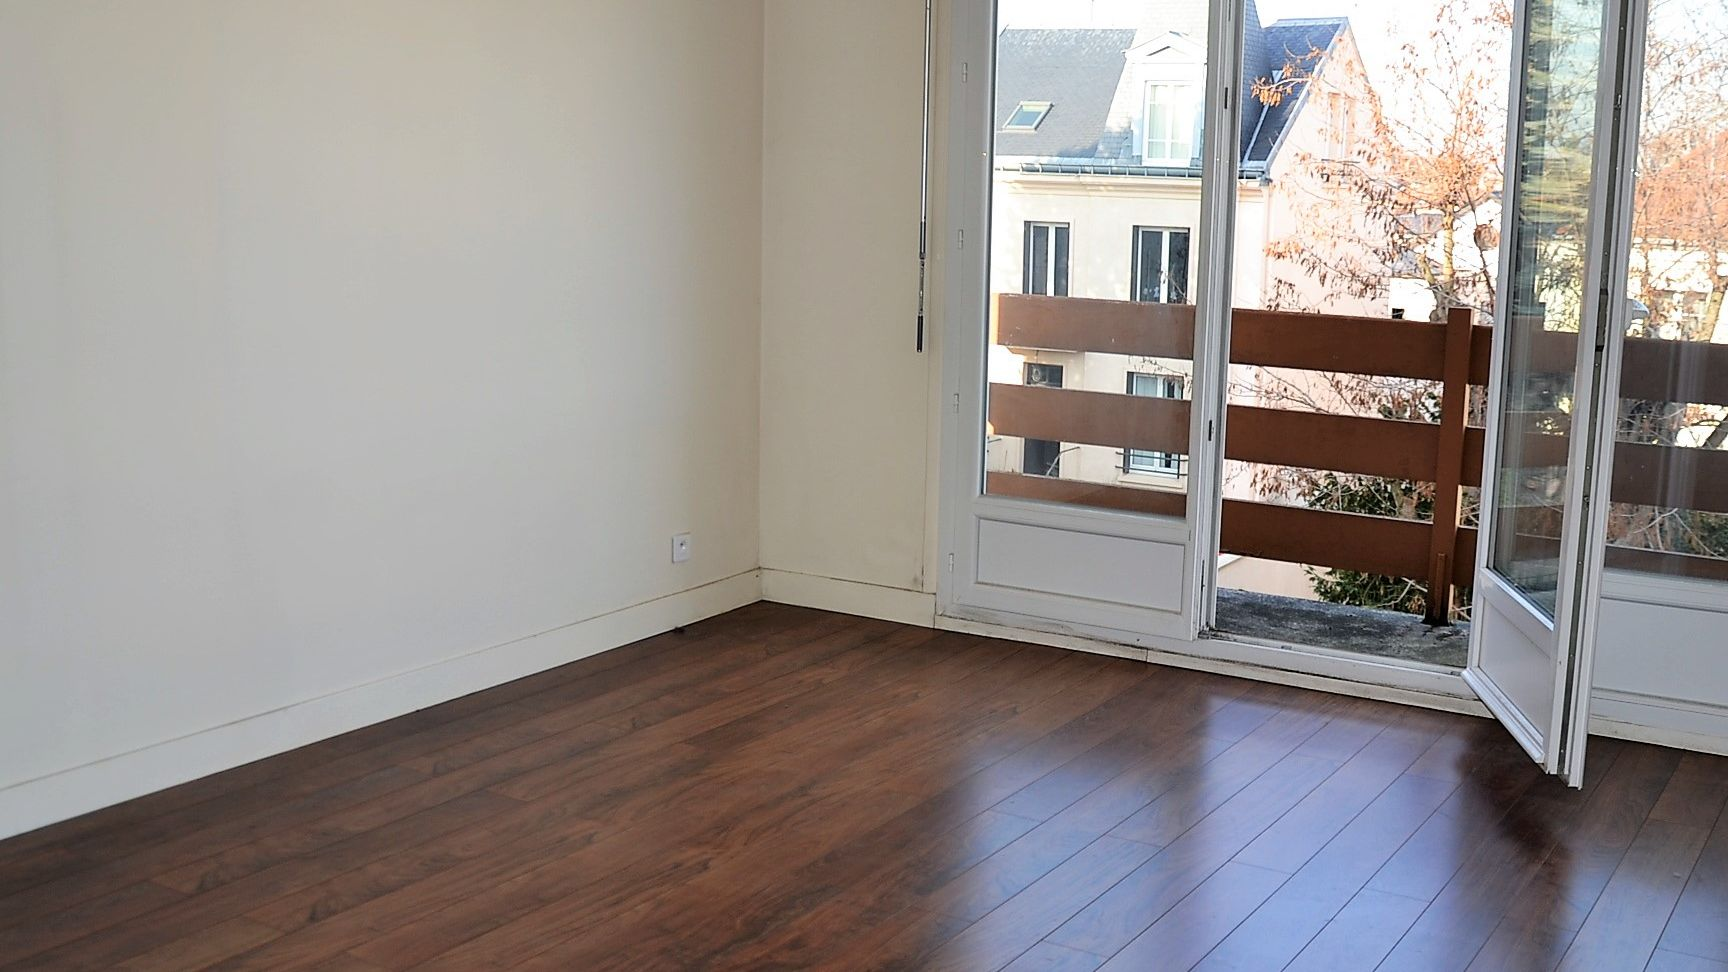 BOIS COLOMBES (92270)